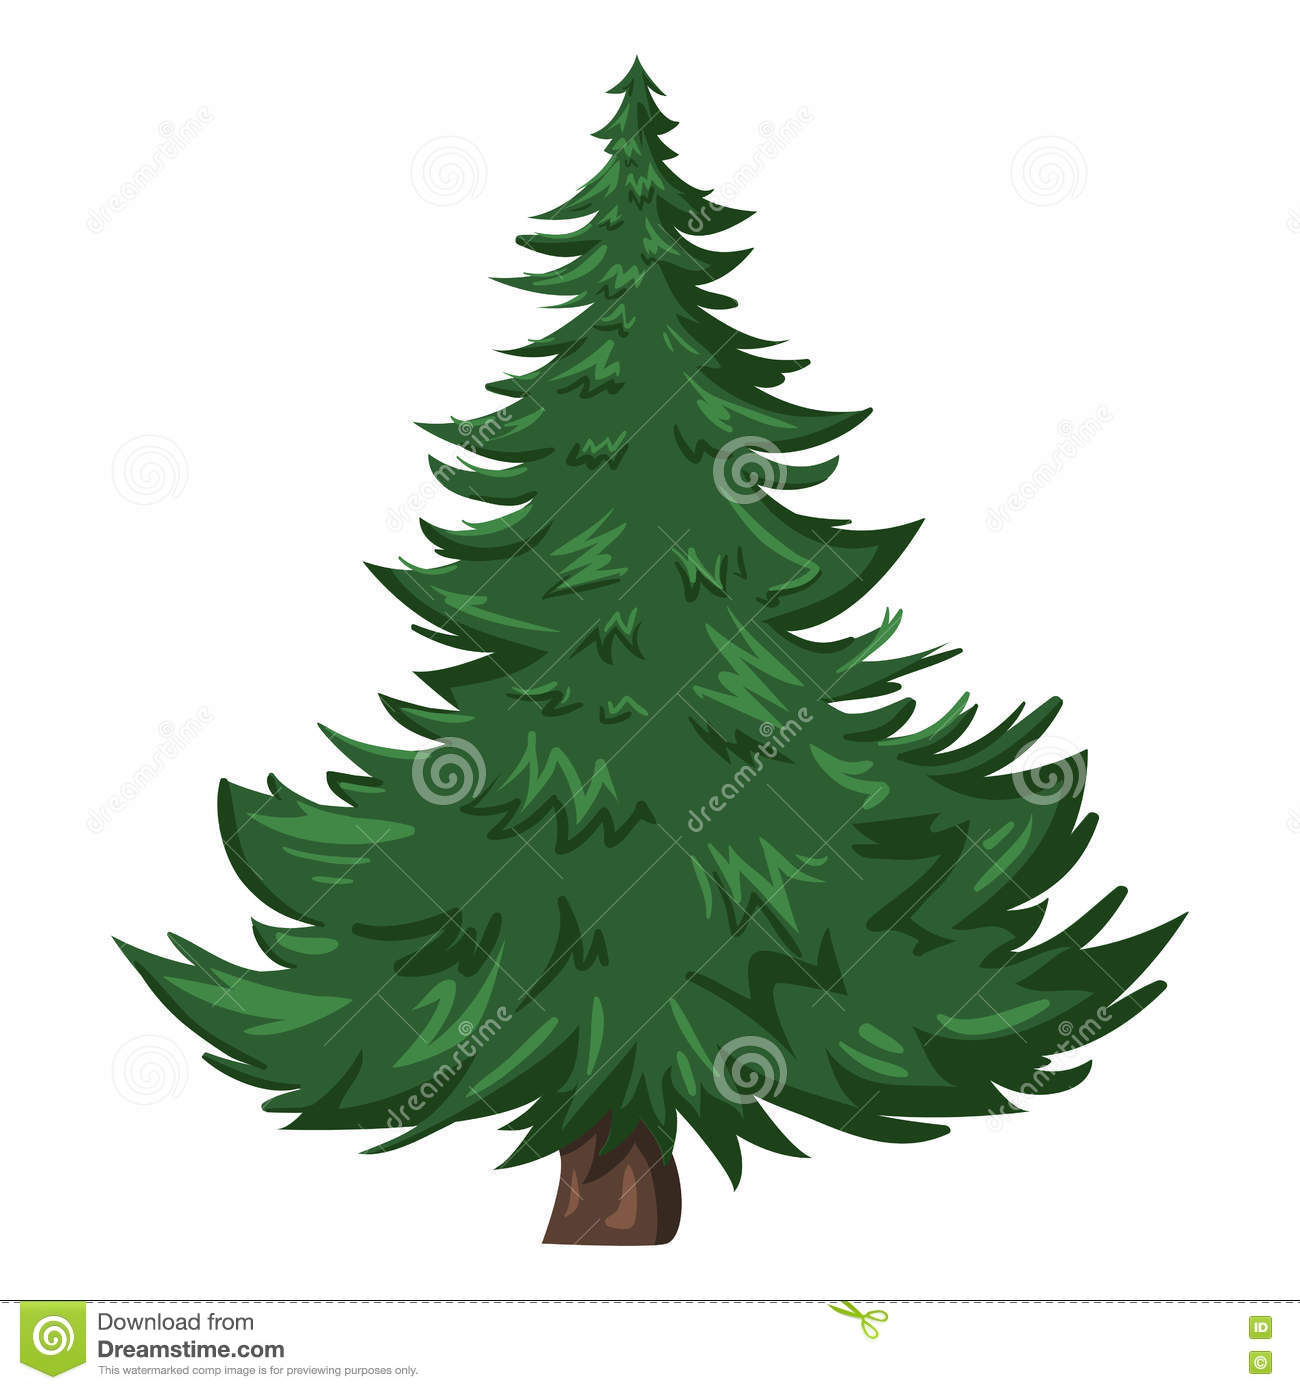 Vector Pine Tree Stock Illustrations 111 365 Vector Pine Tree Stock Illustrations Vectors Clipart Dreamstime Freepik free vectors, photos and psd freepik online editor edit your freepik templates slidesgo free templates for presentations storyset free editable illustrations. vector pine tree stock illustrations 111 365 vector pine tree stock illustrations vectors clipart dreamstime